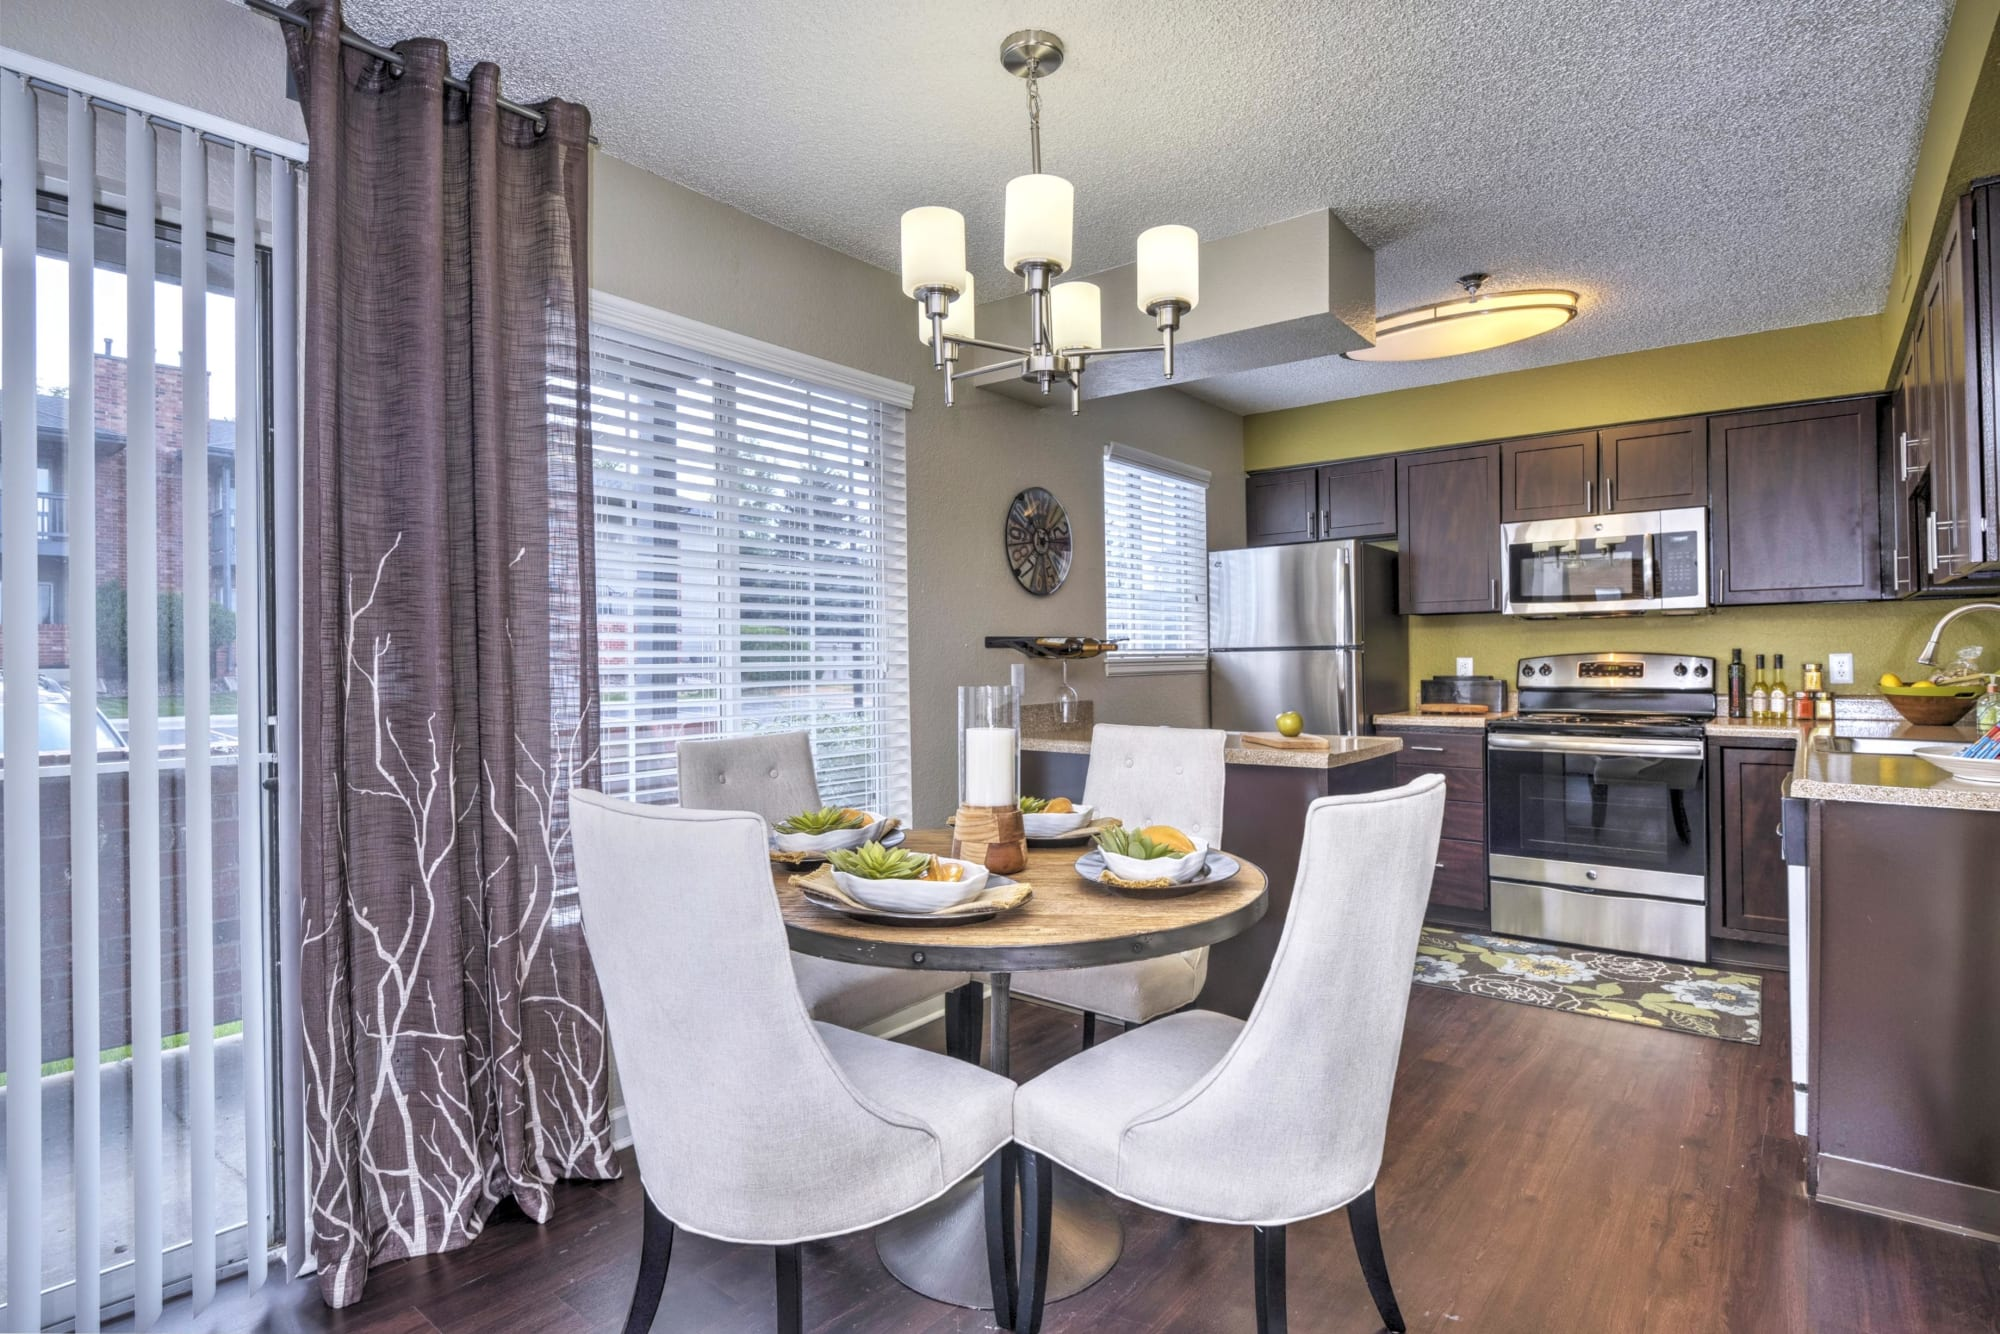 Kitchen overlooking the dining room in an open floor plan at Arapahoe Club Apartments in Denver, Colorado